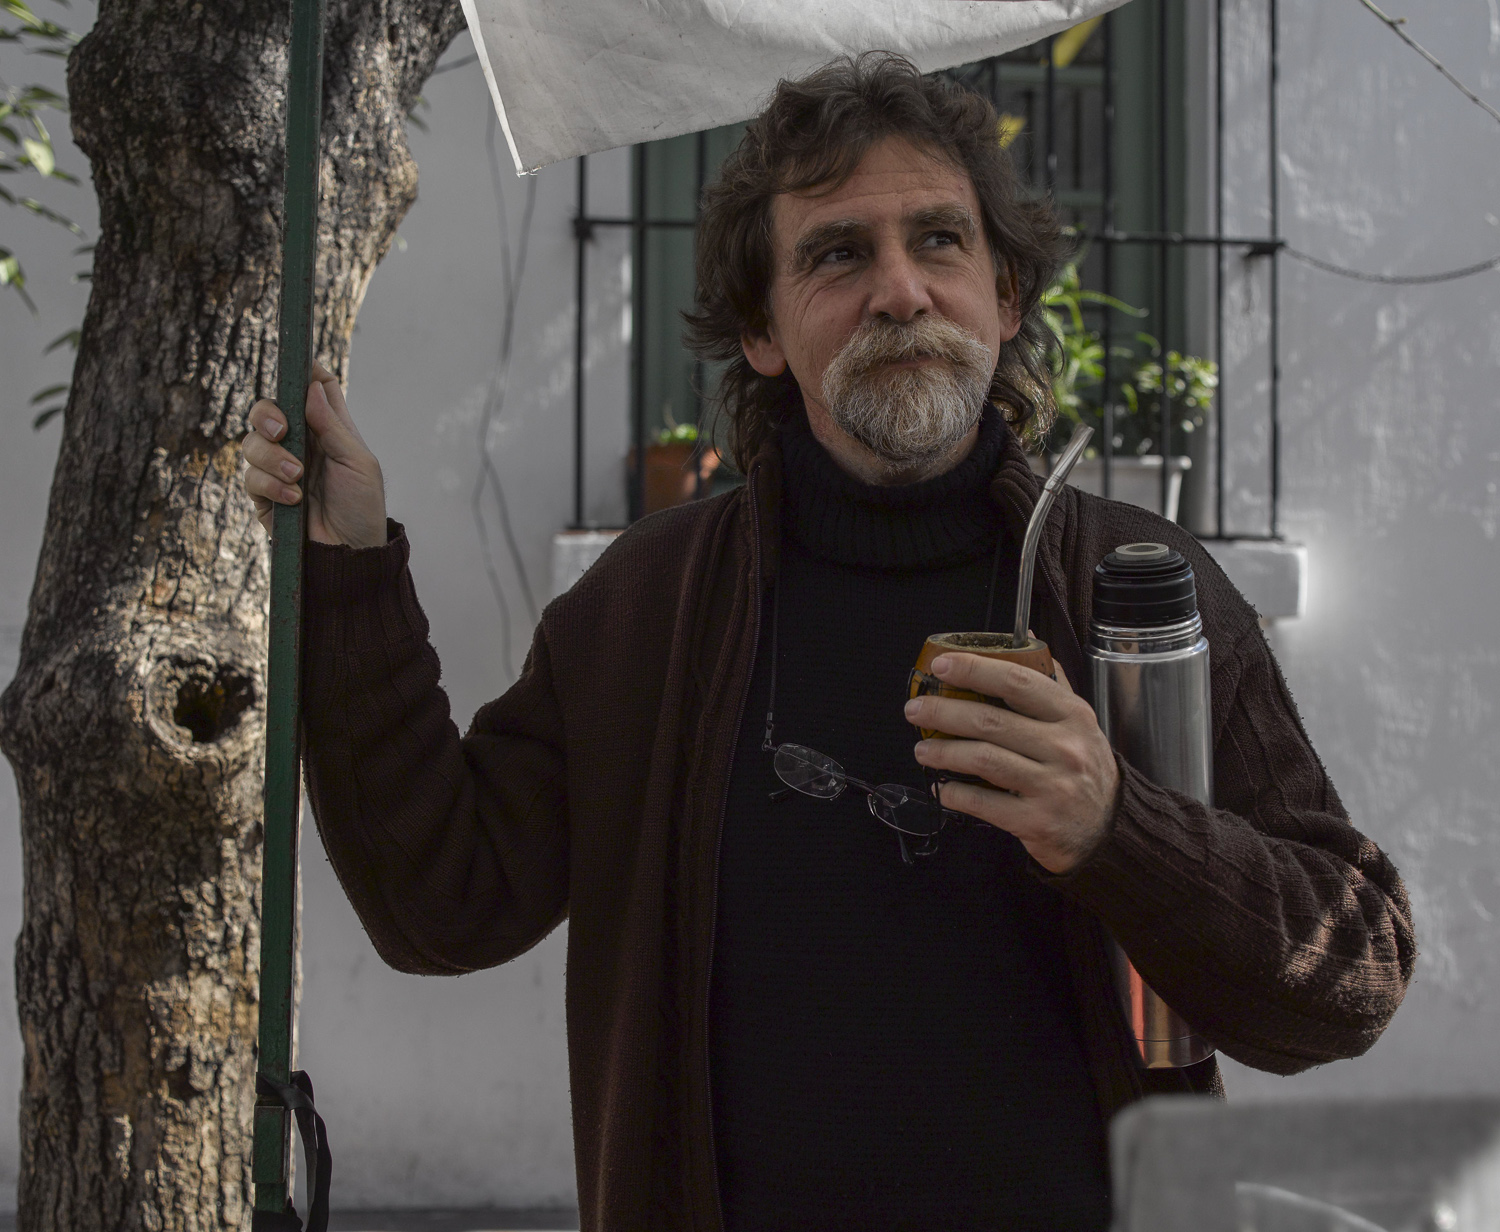 Mate drinker - Buenos Aires, 2008